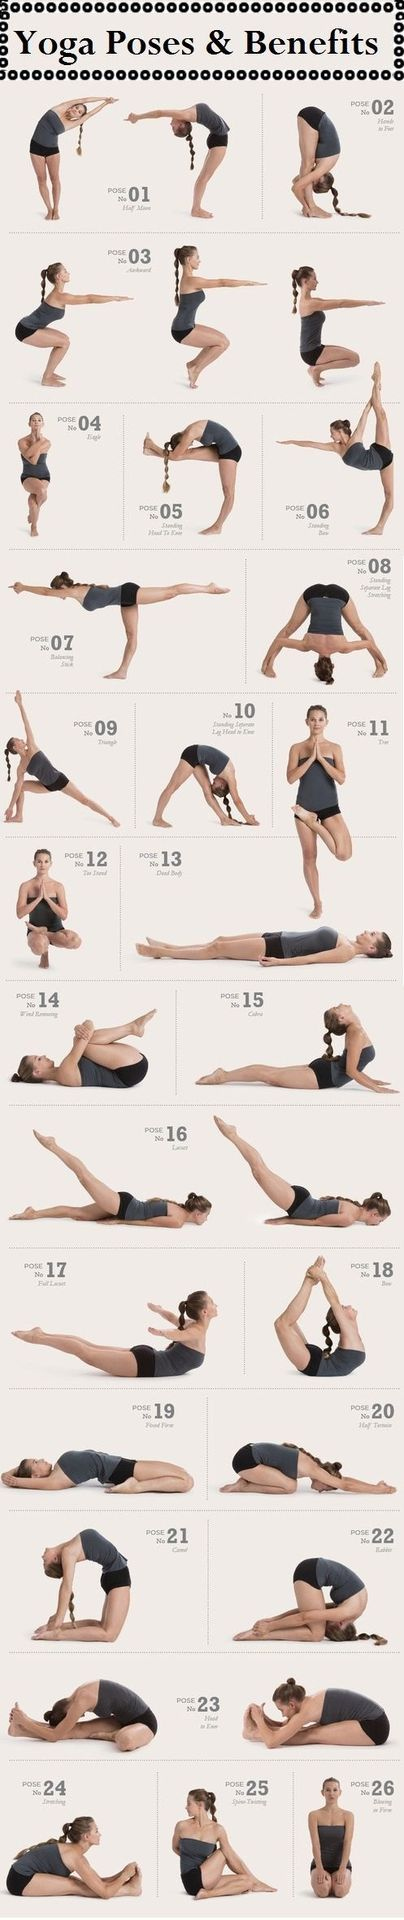 fit girl and lovin' it - Yoga poses.